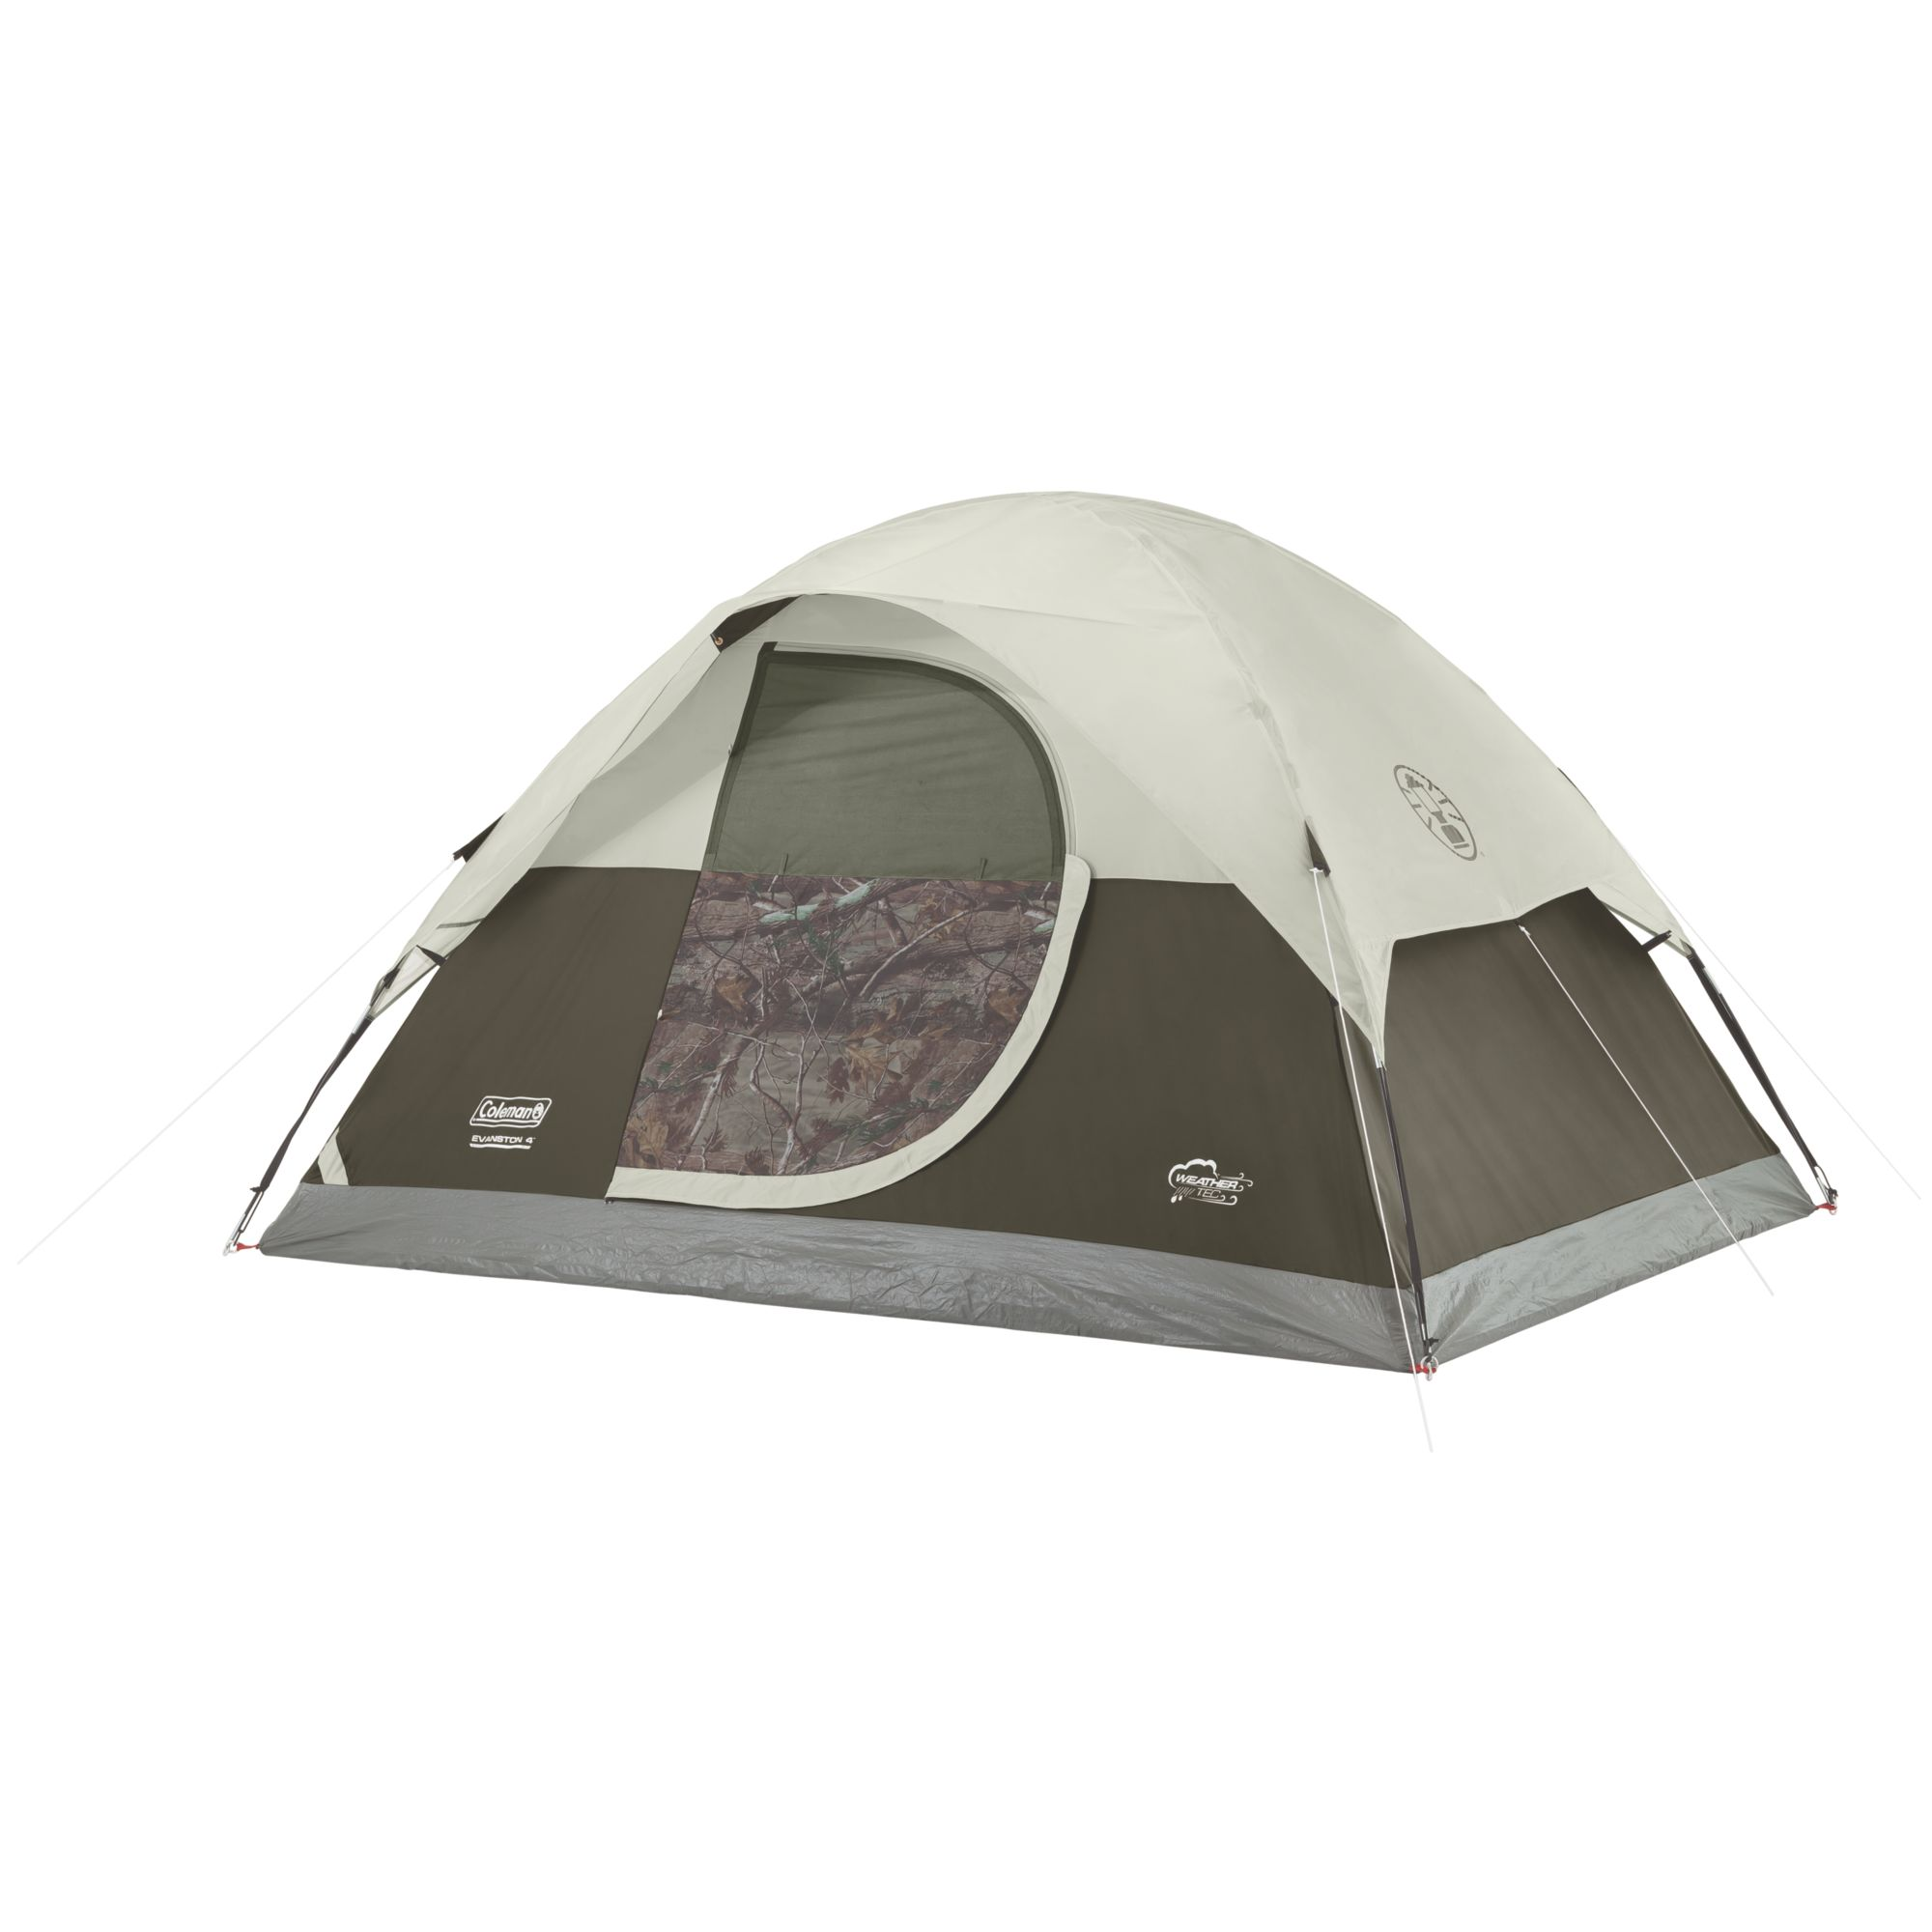 awning ozark connectent walmart canopy for person tent com ip trail